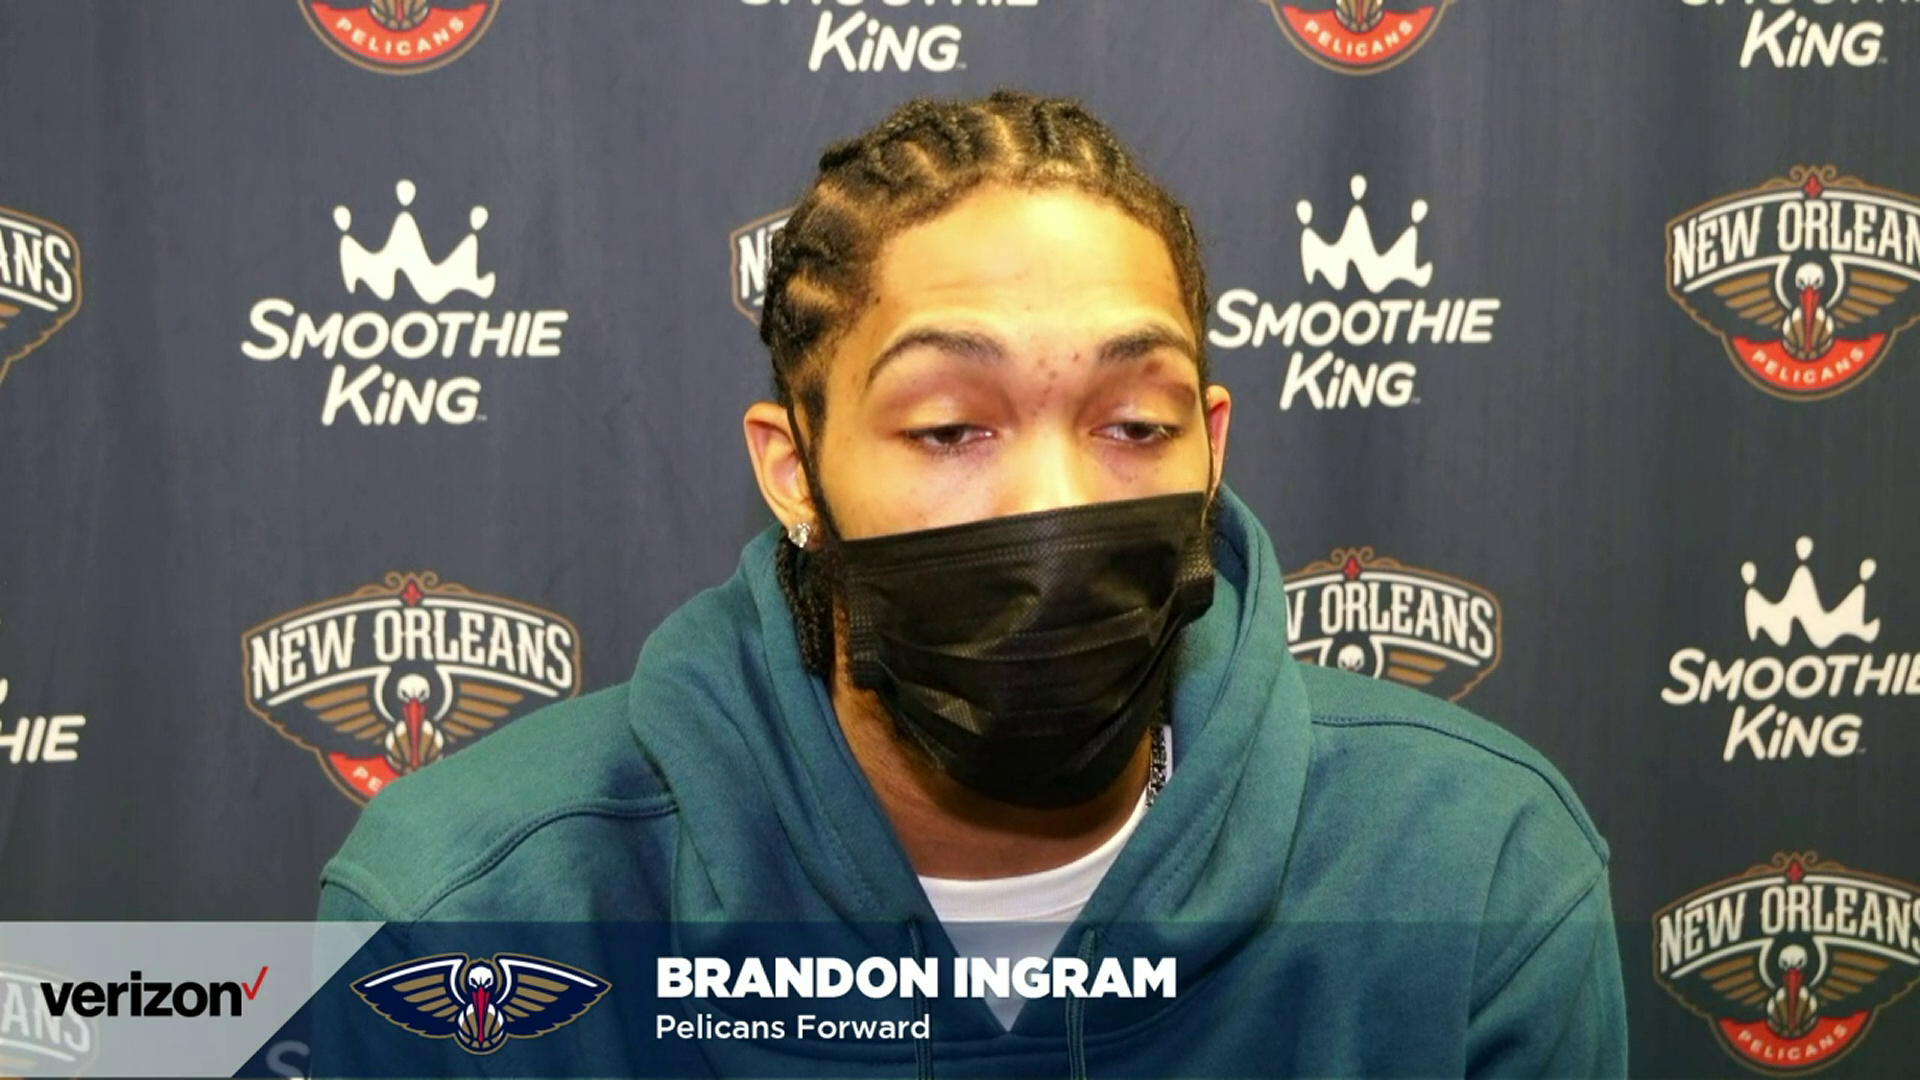 Pelicans-Spurs Postgame: Brandon Ingram 2-27-21